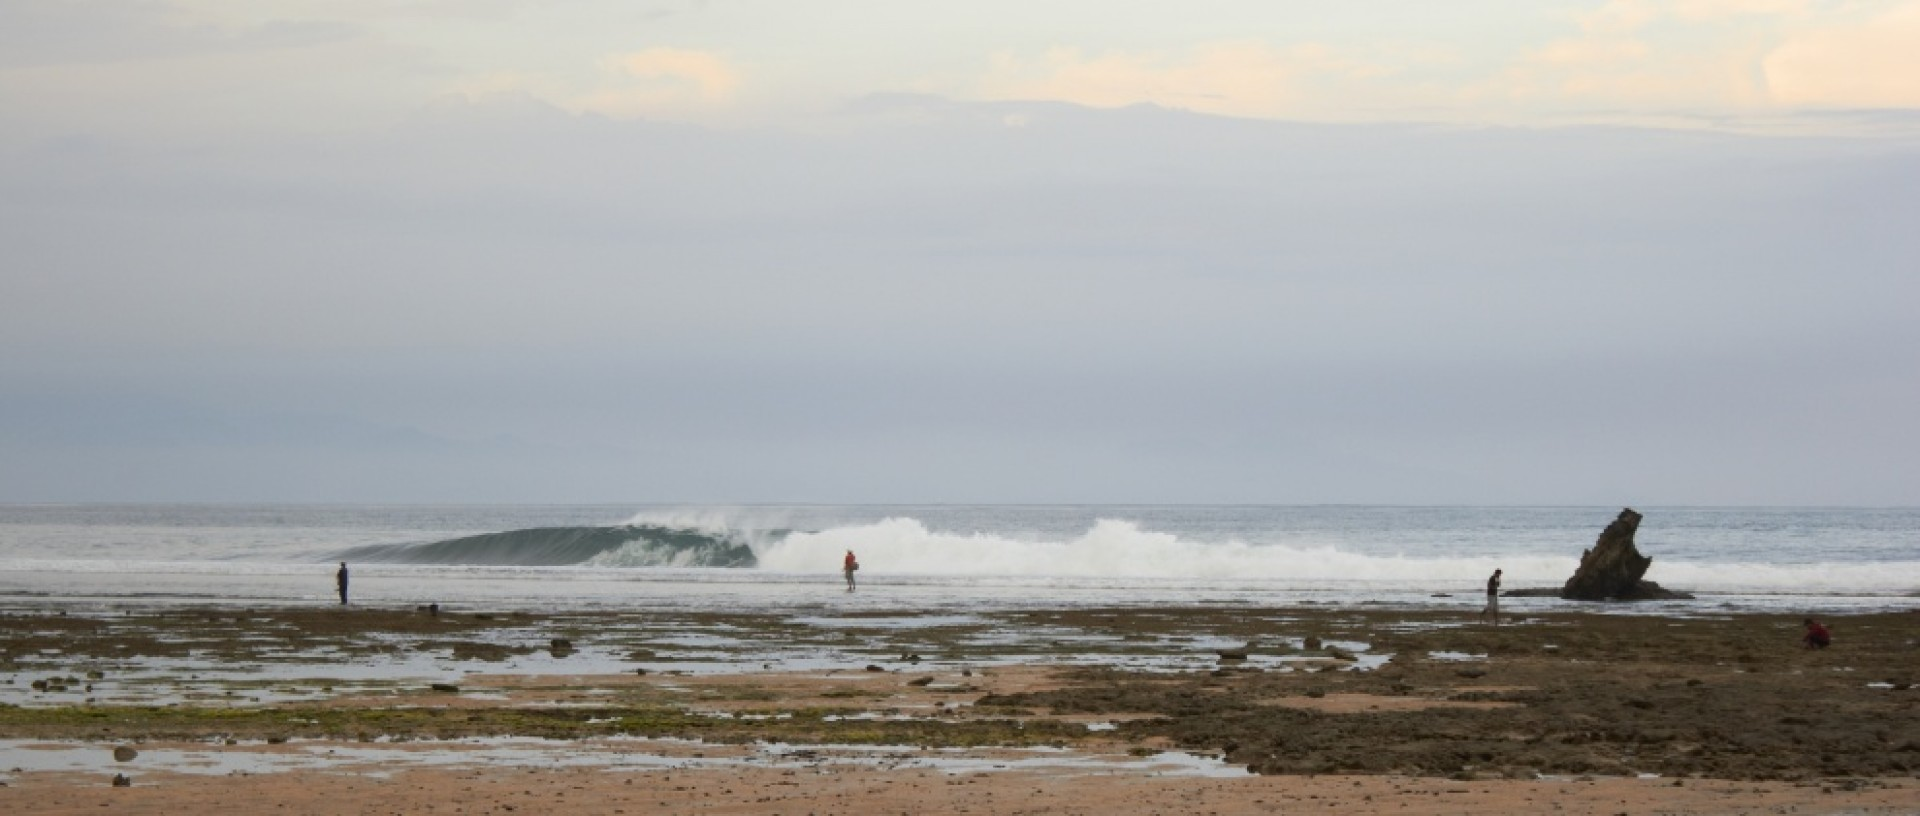 Dan Hunter's photo of Nusa Dua